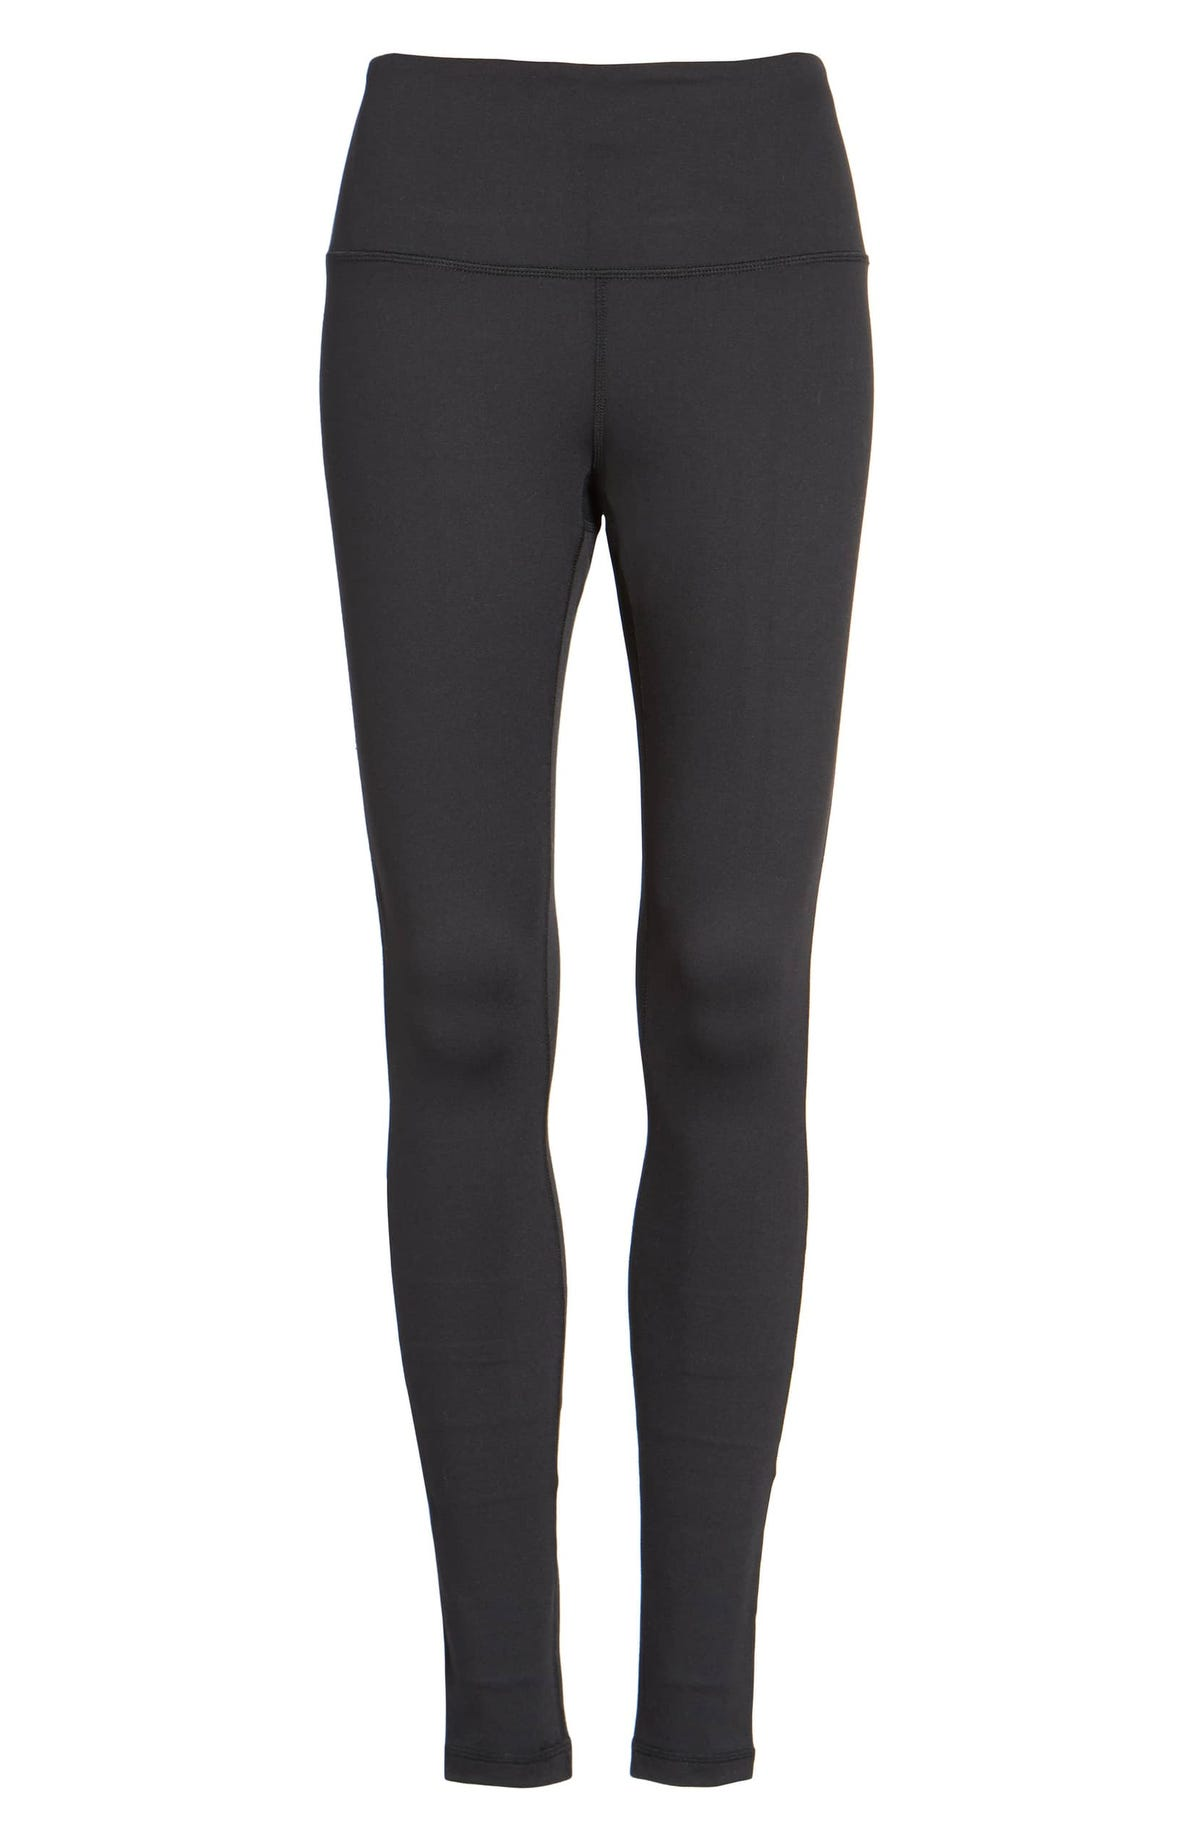 a92c65c39f Best Black Leggings - Reviews On Top Brands & Styles